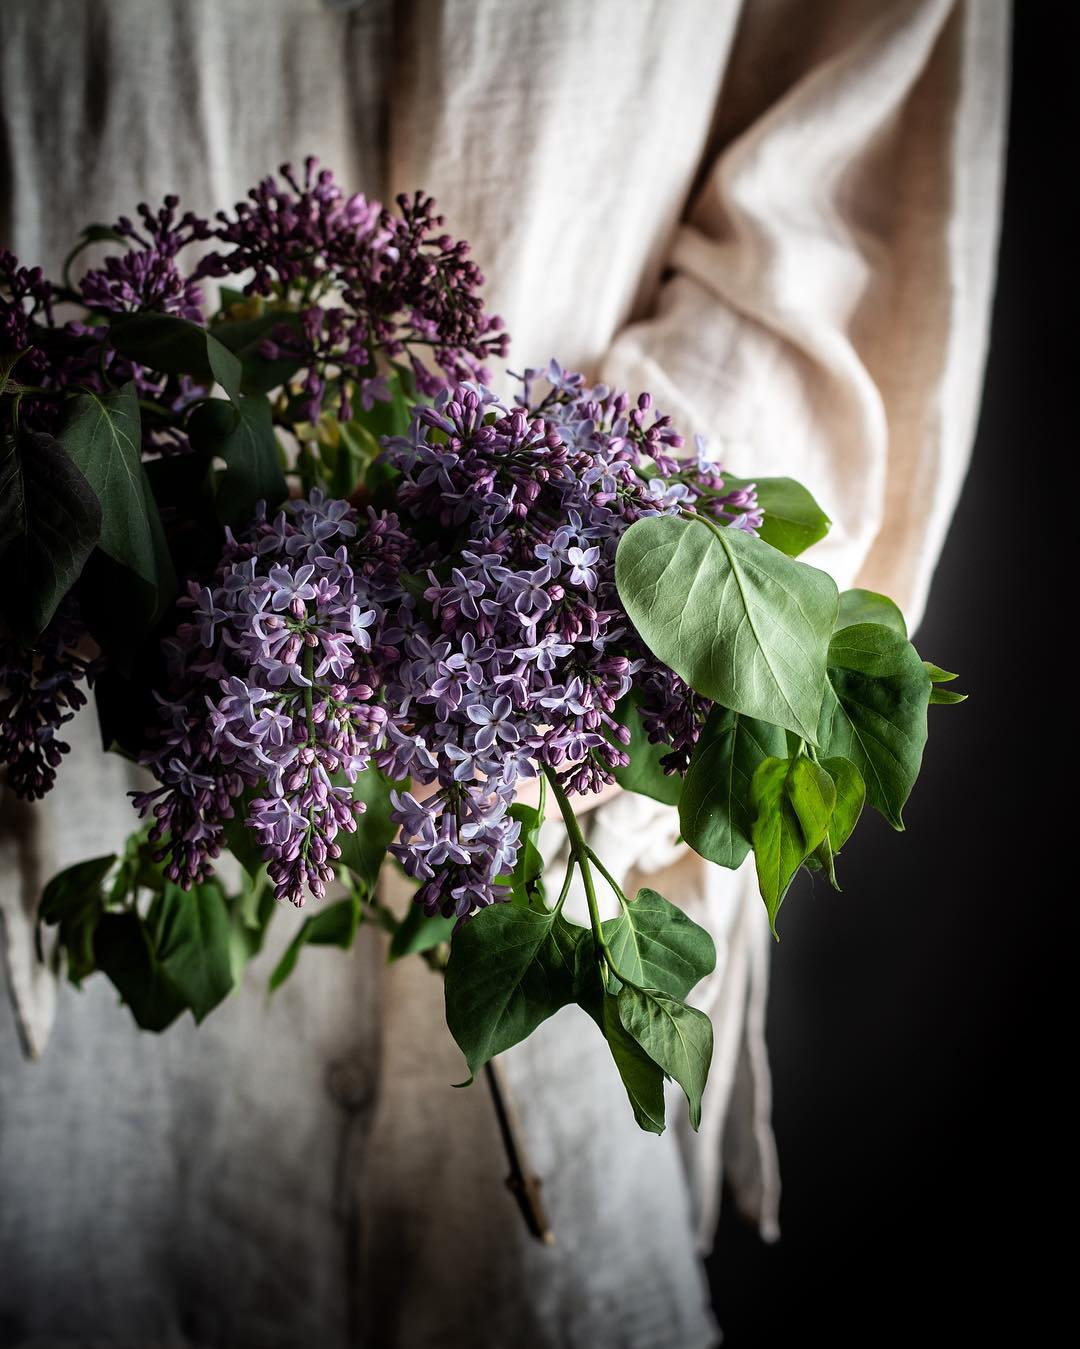 Aimee making sugar magic with Lilac flowers. Source:  @twiggstudios